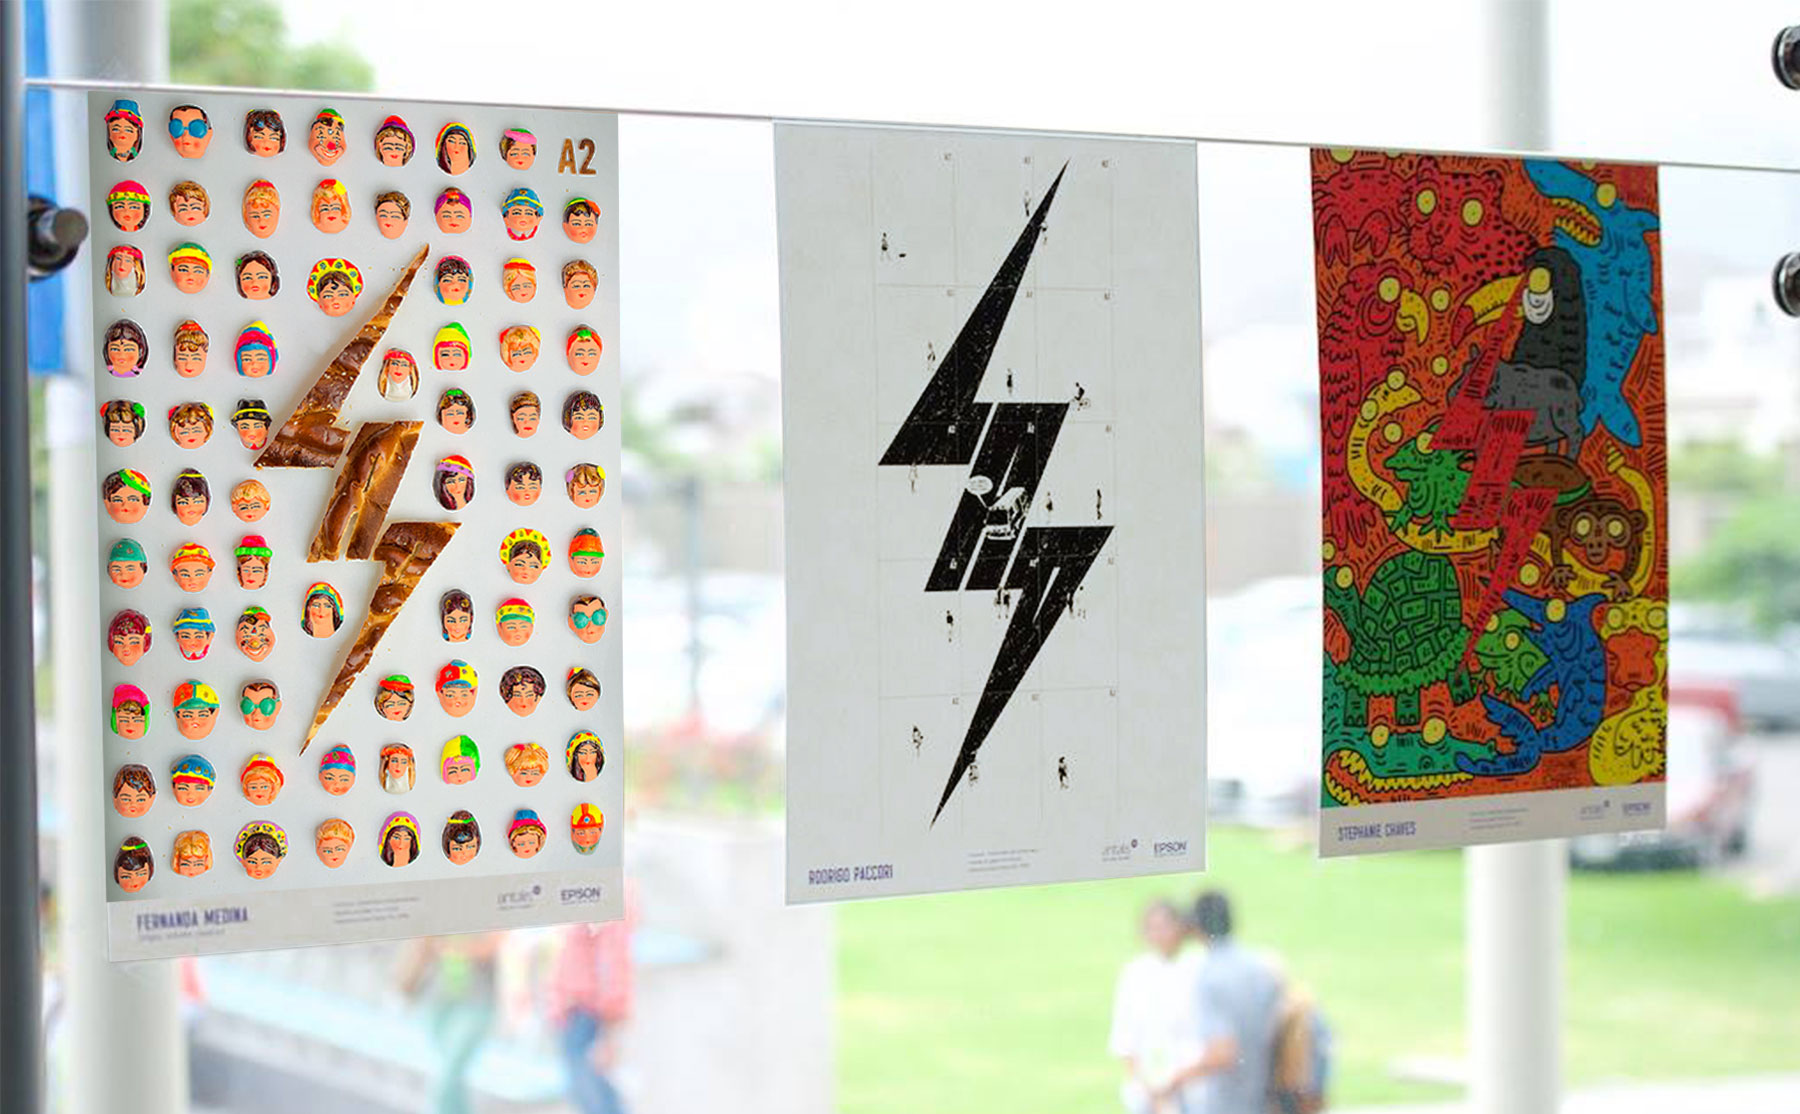 Winners of the Poster Design contest for LAD Fest / World Brand & Packaging Design Society